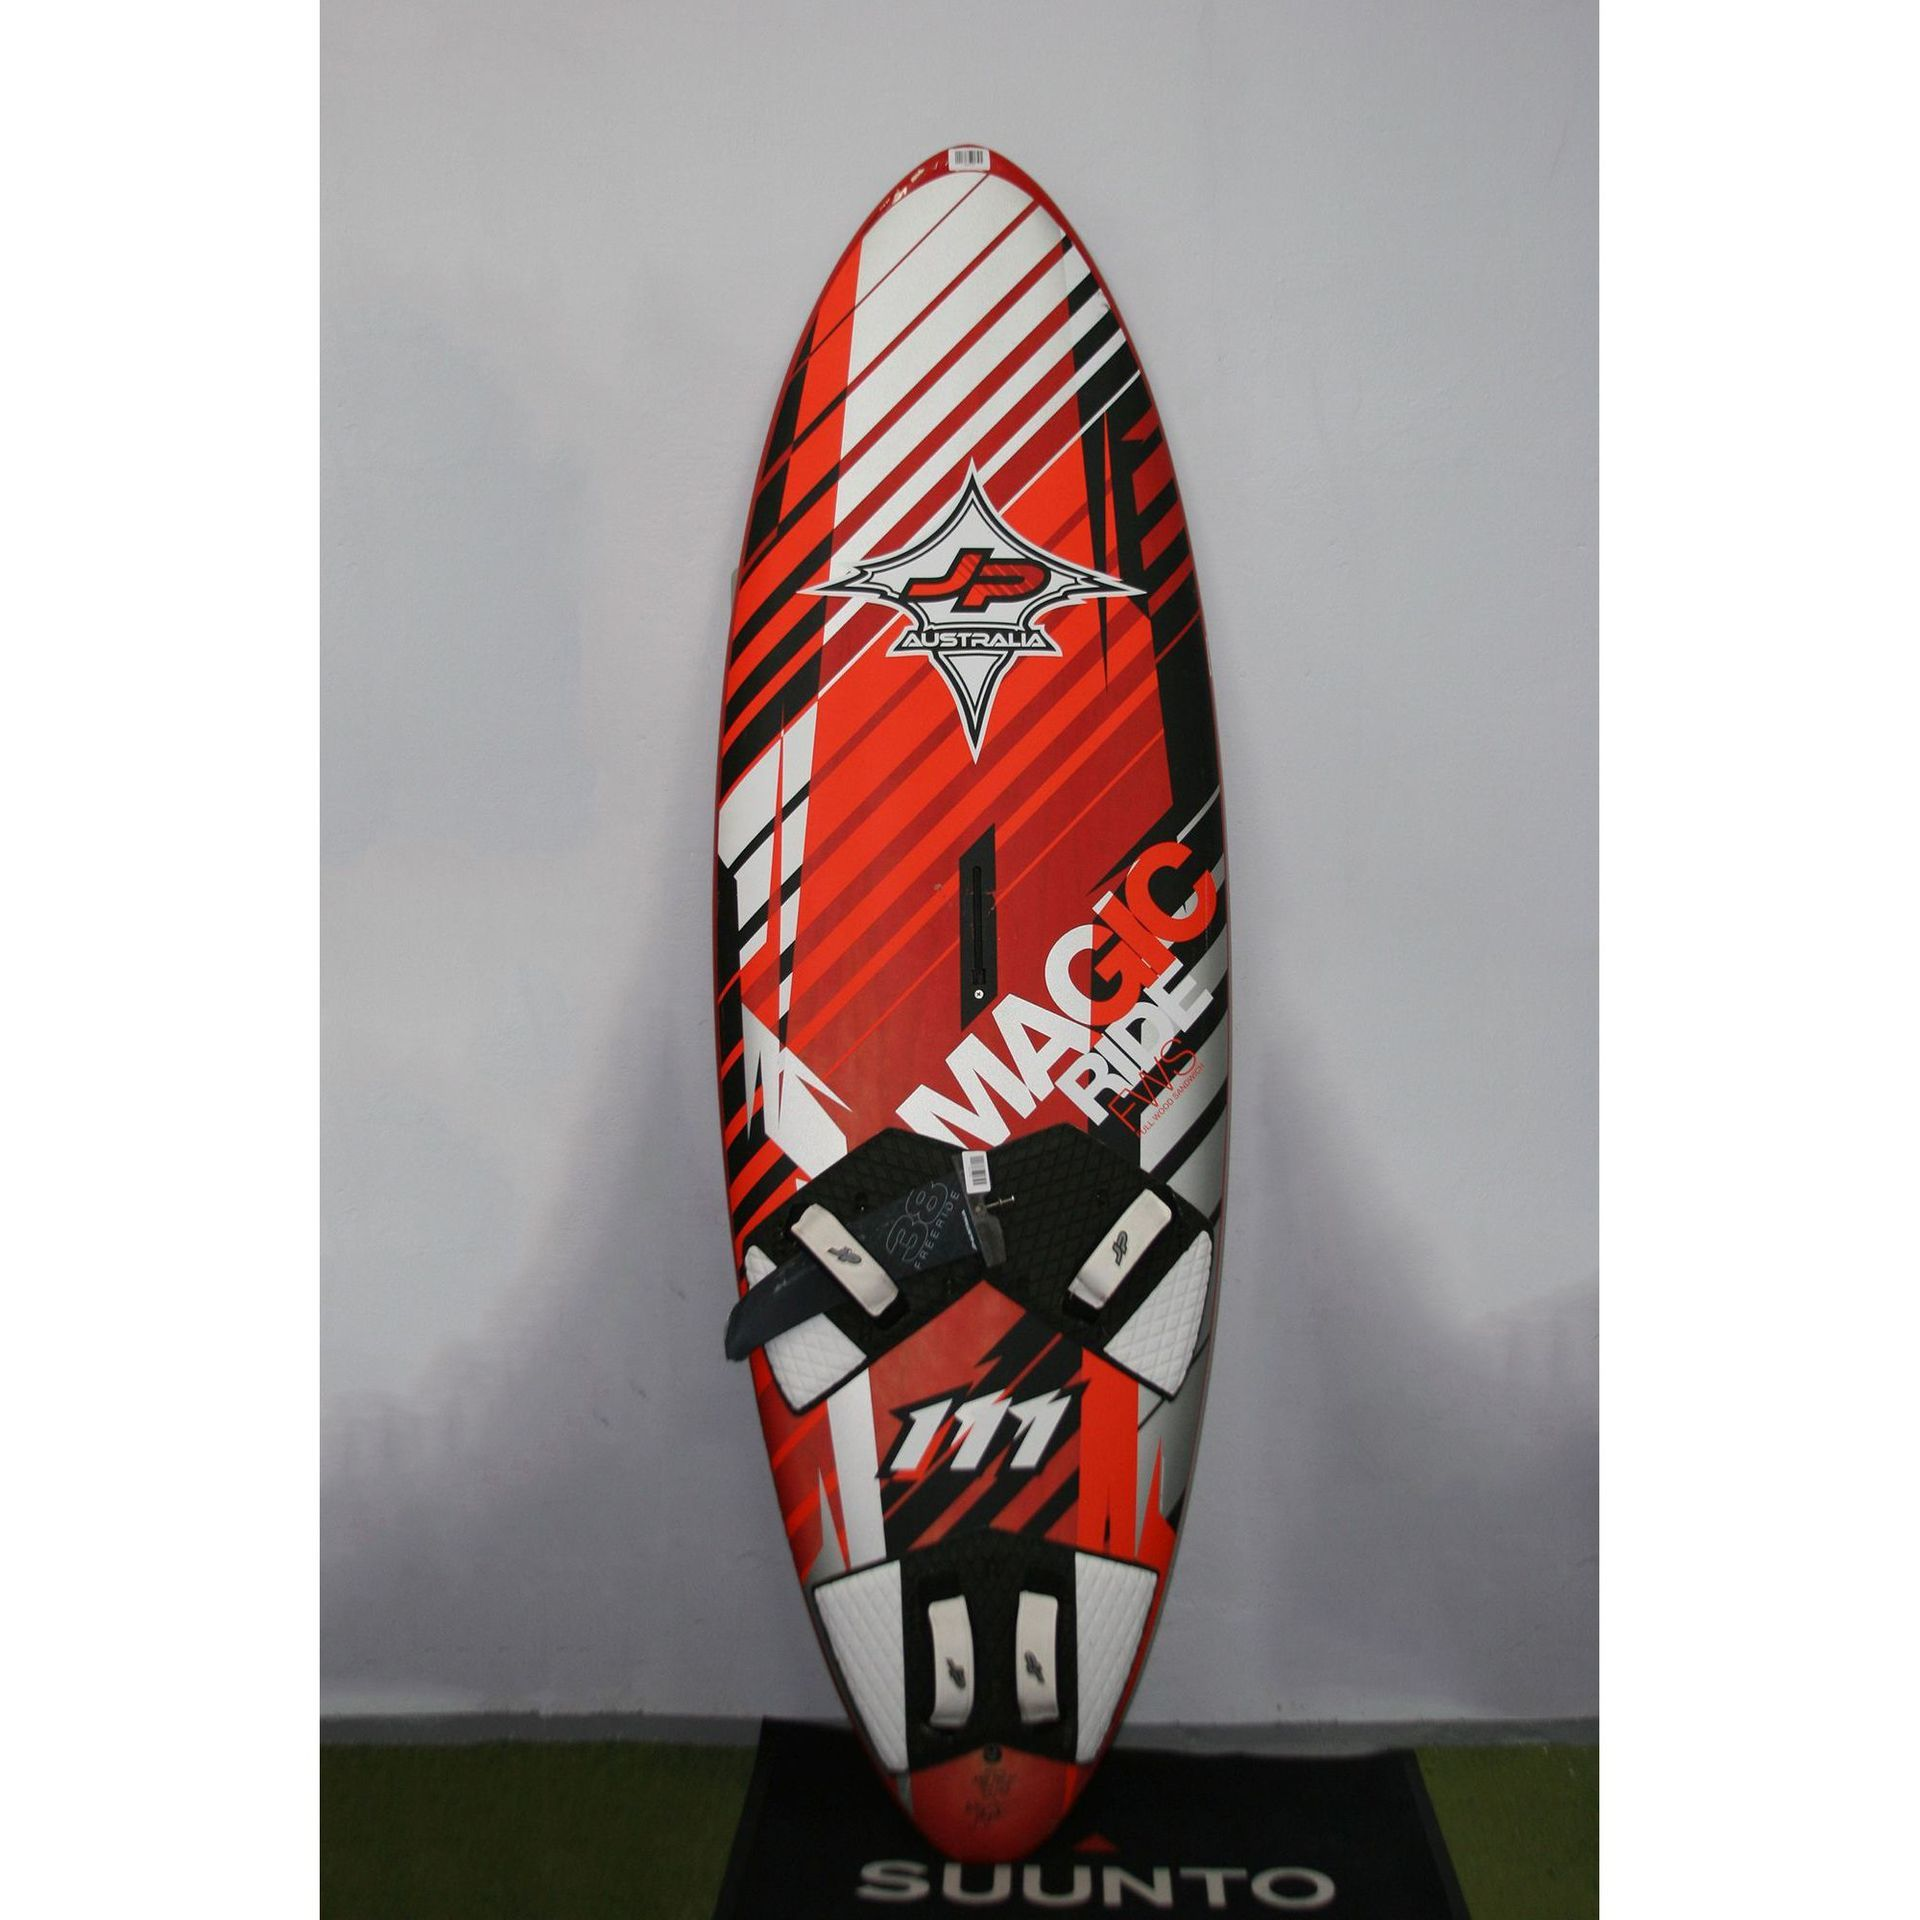 DESKA WINDSURFINGOWA JP MAGIC RIDE 111 -  FREERIDE (1511104)